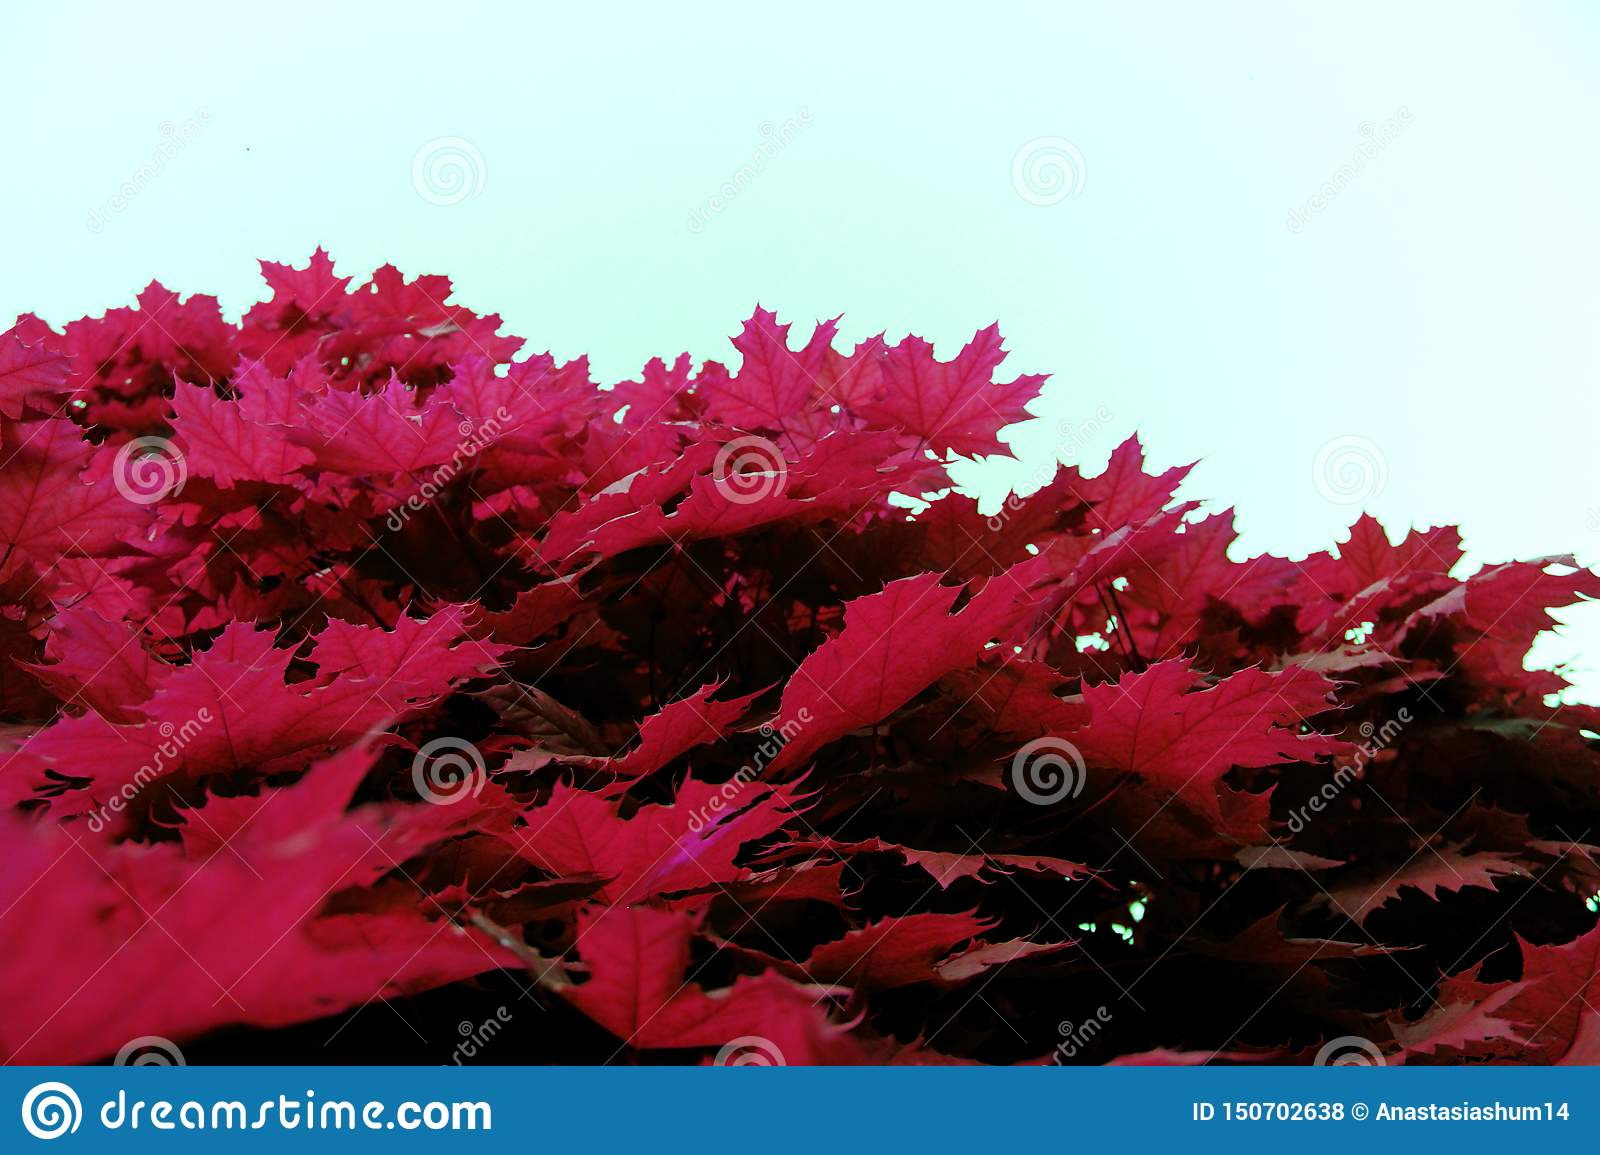 Maple leaves red pink similar texture close up nature.